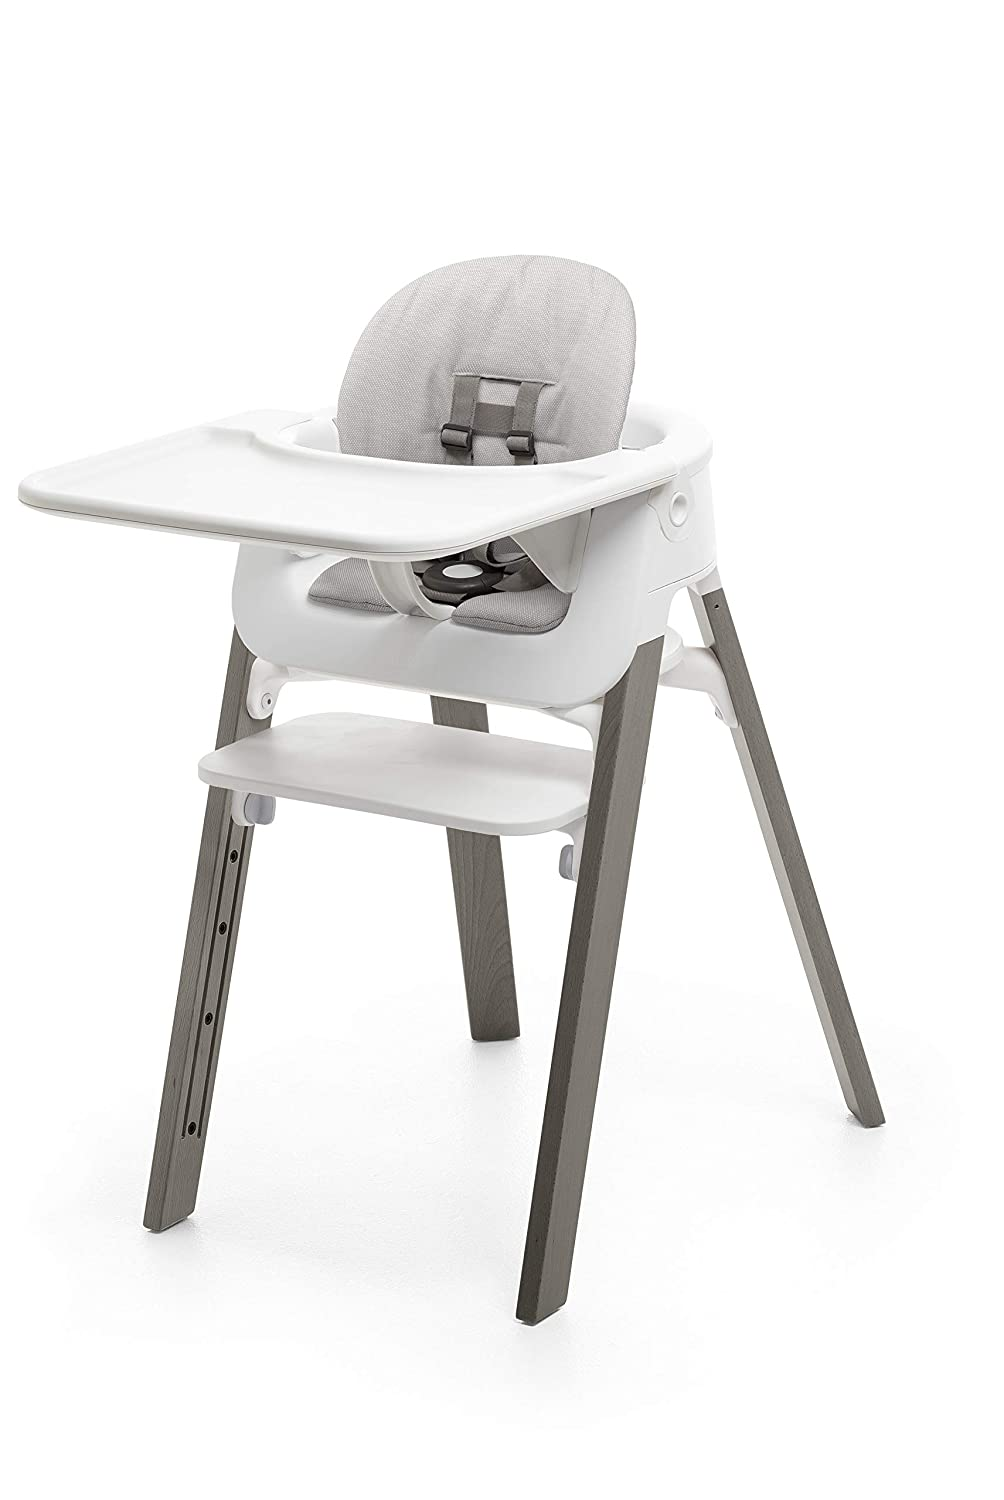 Stokke Steps High Chair Bundle Complete with Cushion